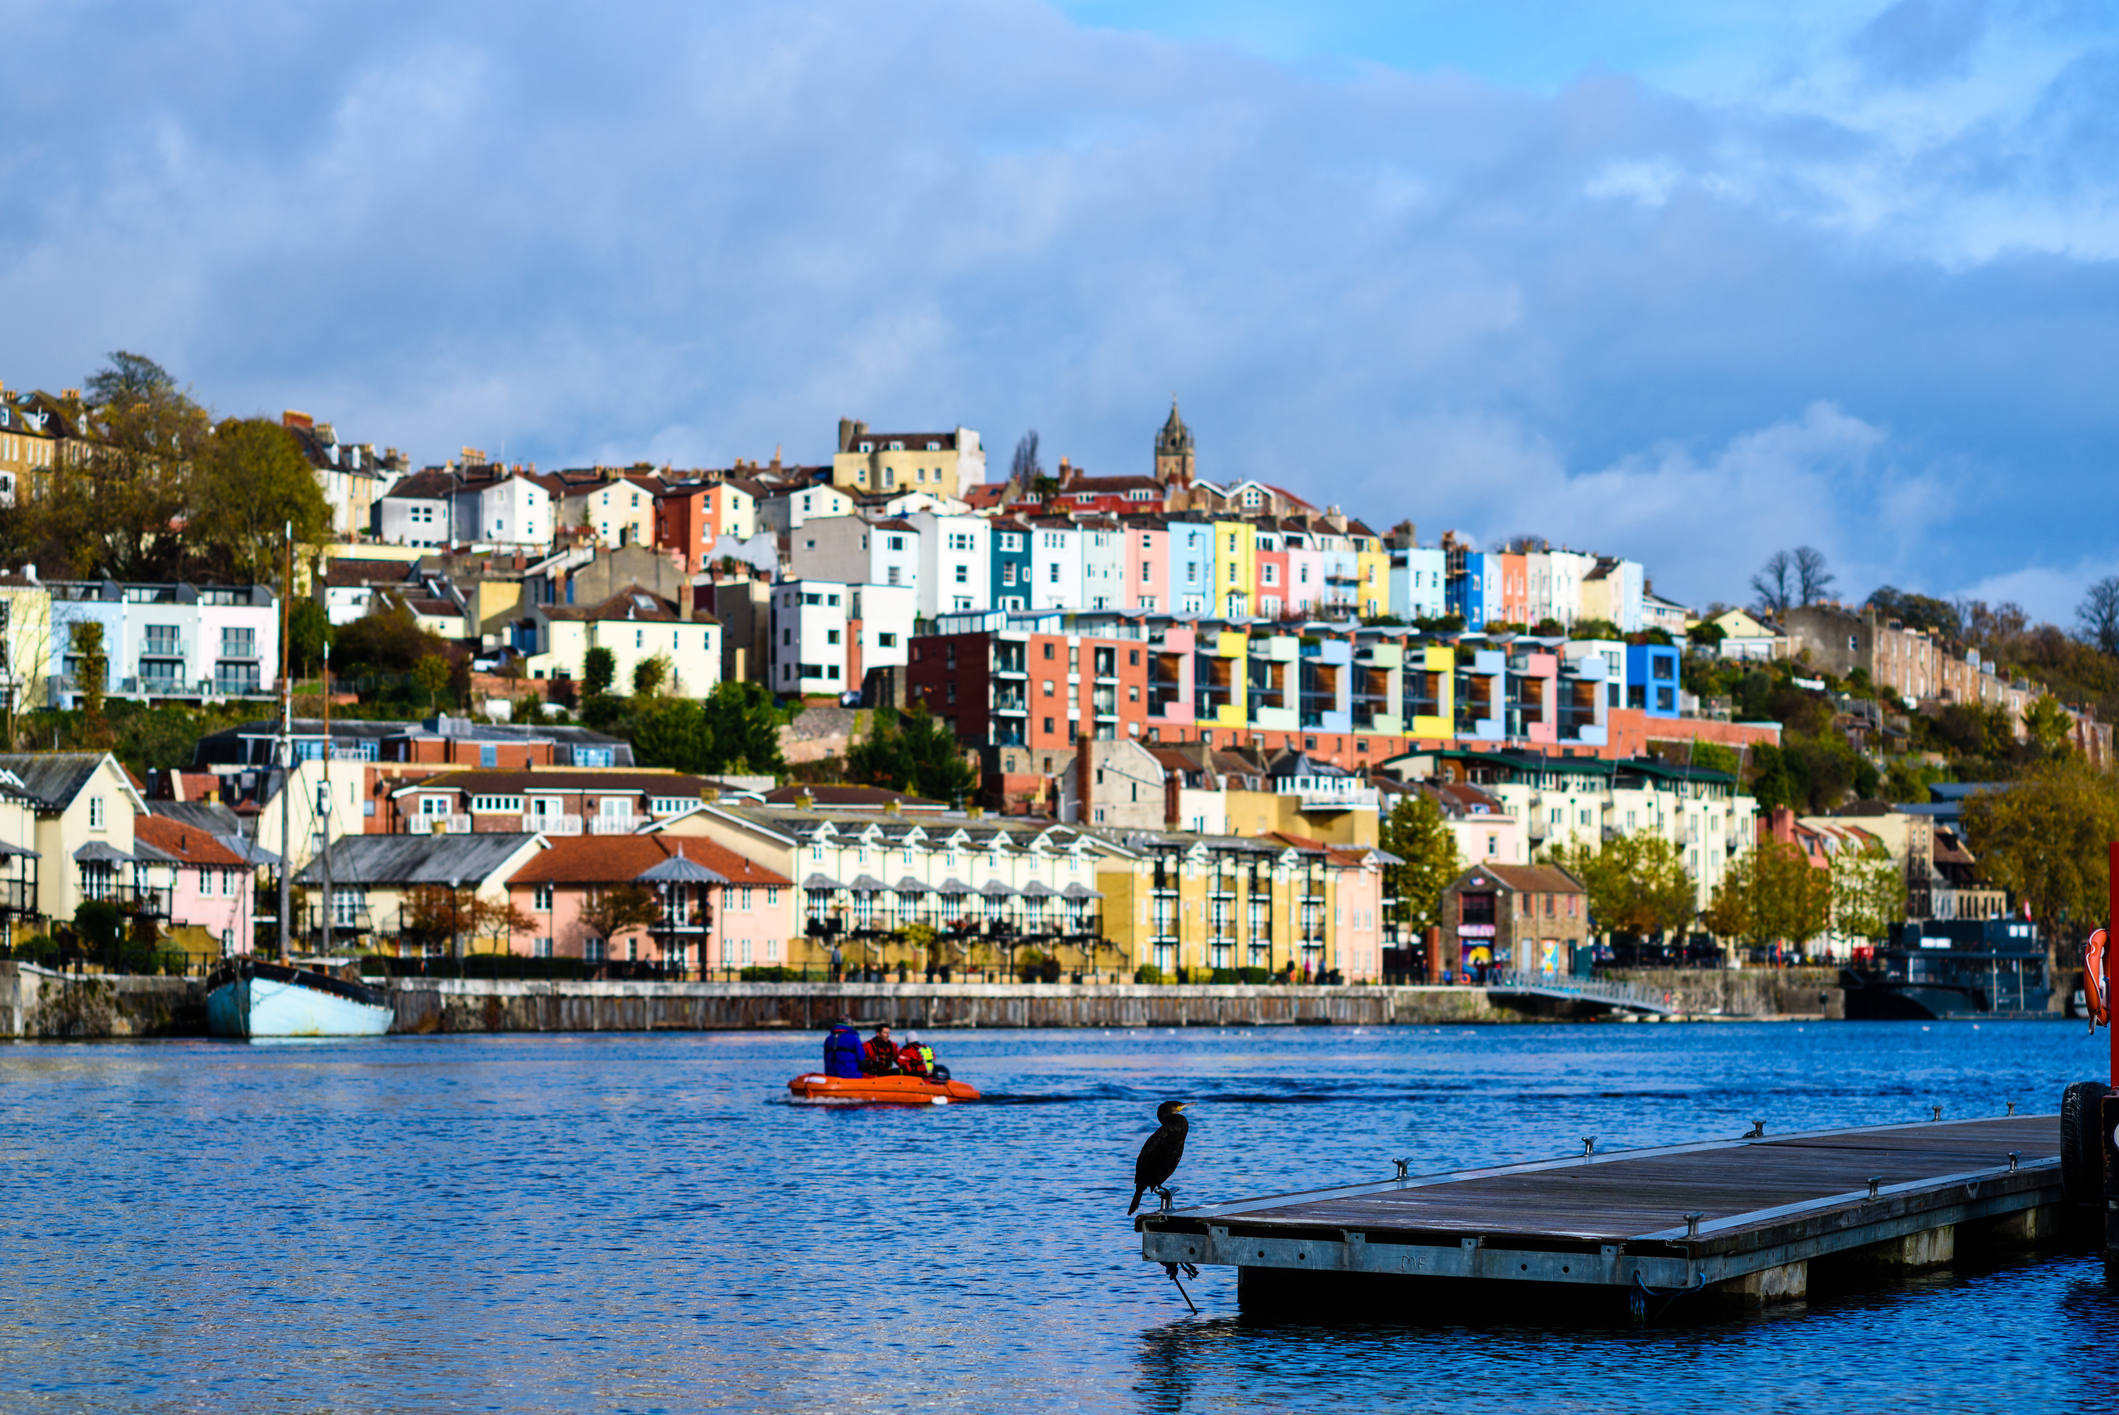 Piano Teachers in Bristol - We are offering piano lessons at numerous places across Bristol. We are also collaborating with Mickleburgh piano store. They are an excellent provider of all things piano. Everything from piano delivery to piano tuning, piano books and pianos themselves... Pianos!!!! They also have numerous places to practice the piano on site. Pop in to have a tinkle on some of their excellent pianos at their premises, in Bristol, on Gloucester Road. We can offer piano lessons from here, as well as to other locations such as Montpelier, Souhtville, Bedminster, Keynsham, Redland, Clifton, Cotham, St. Andrews and Brislington.